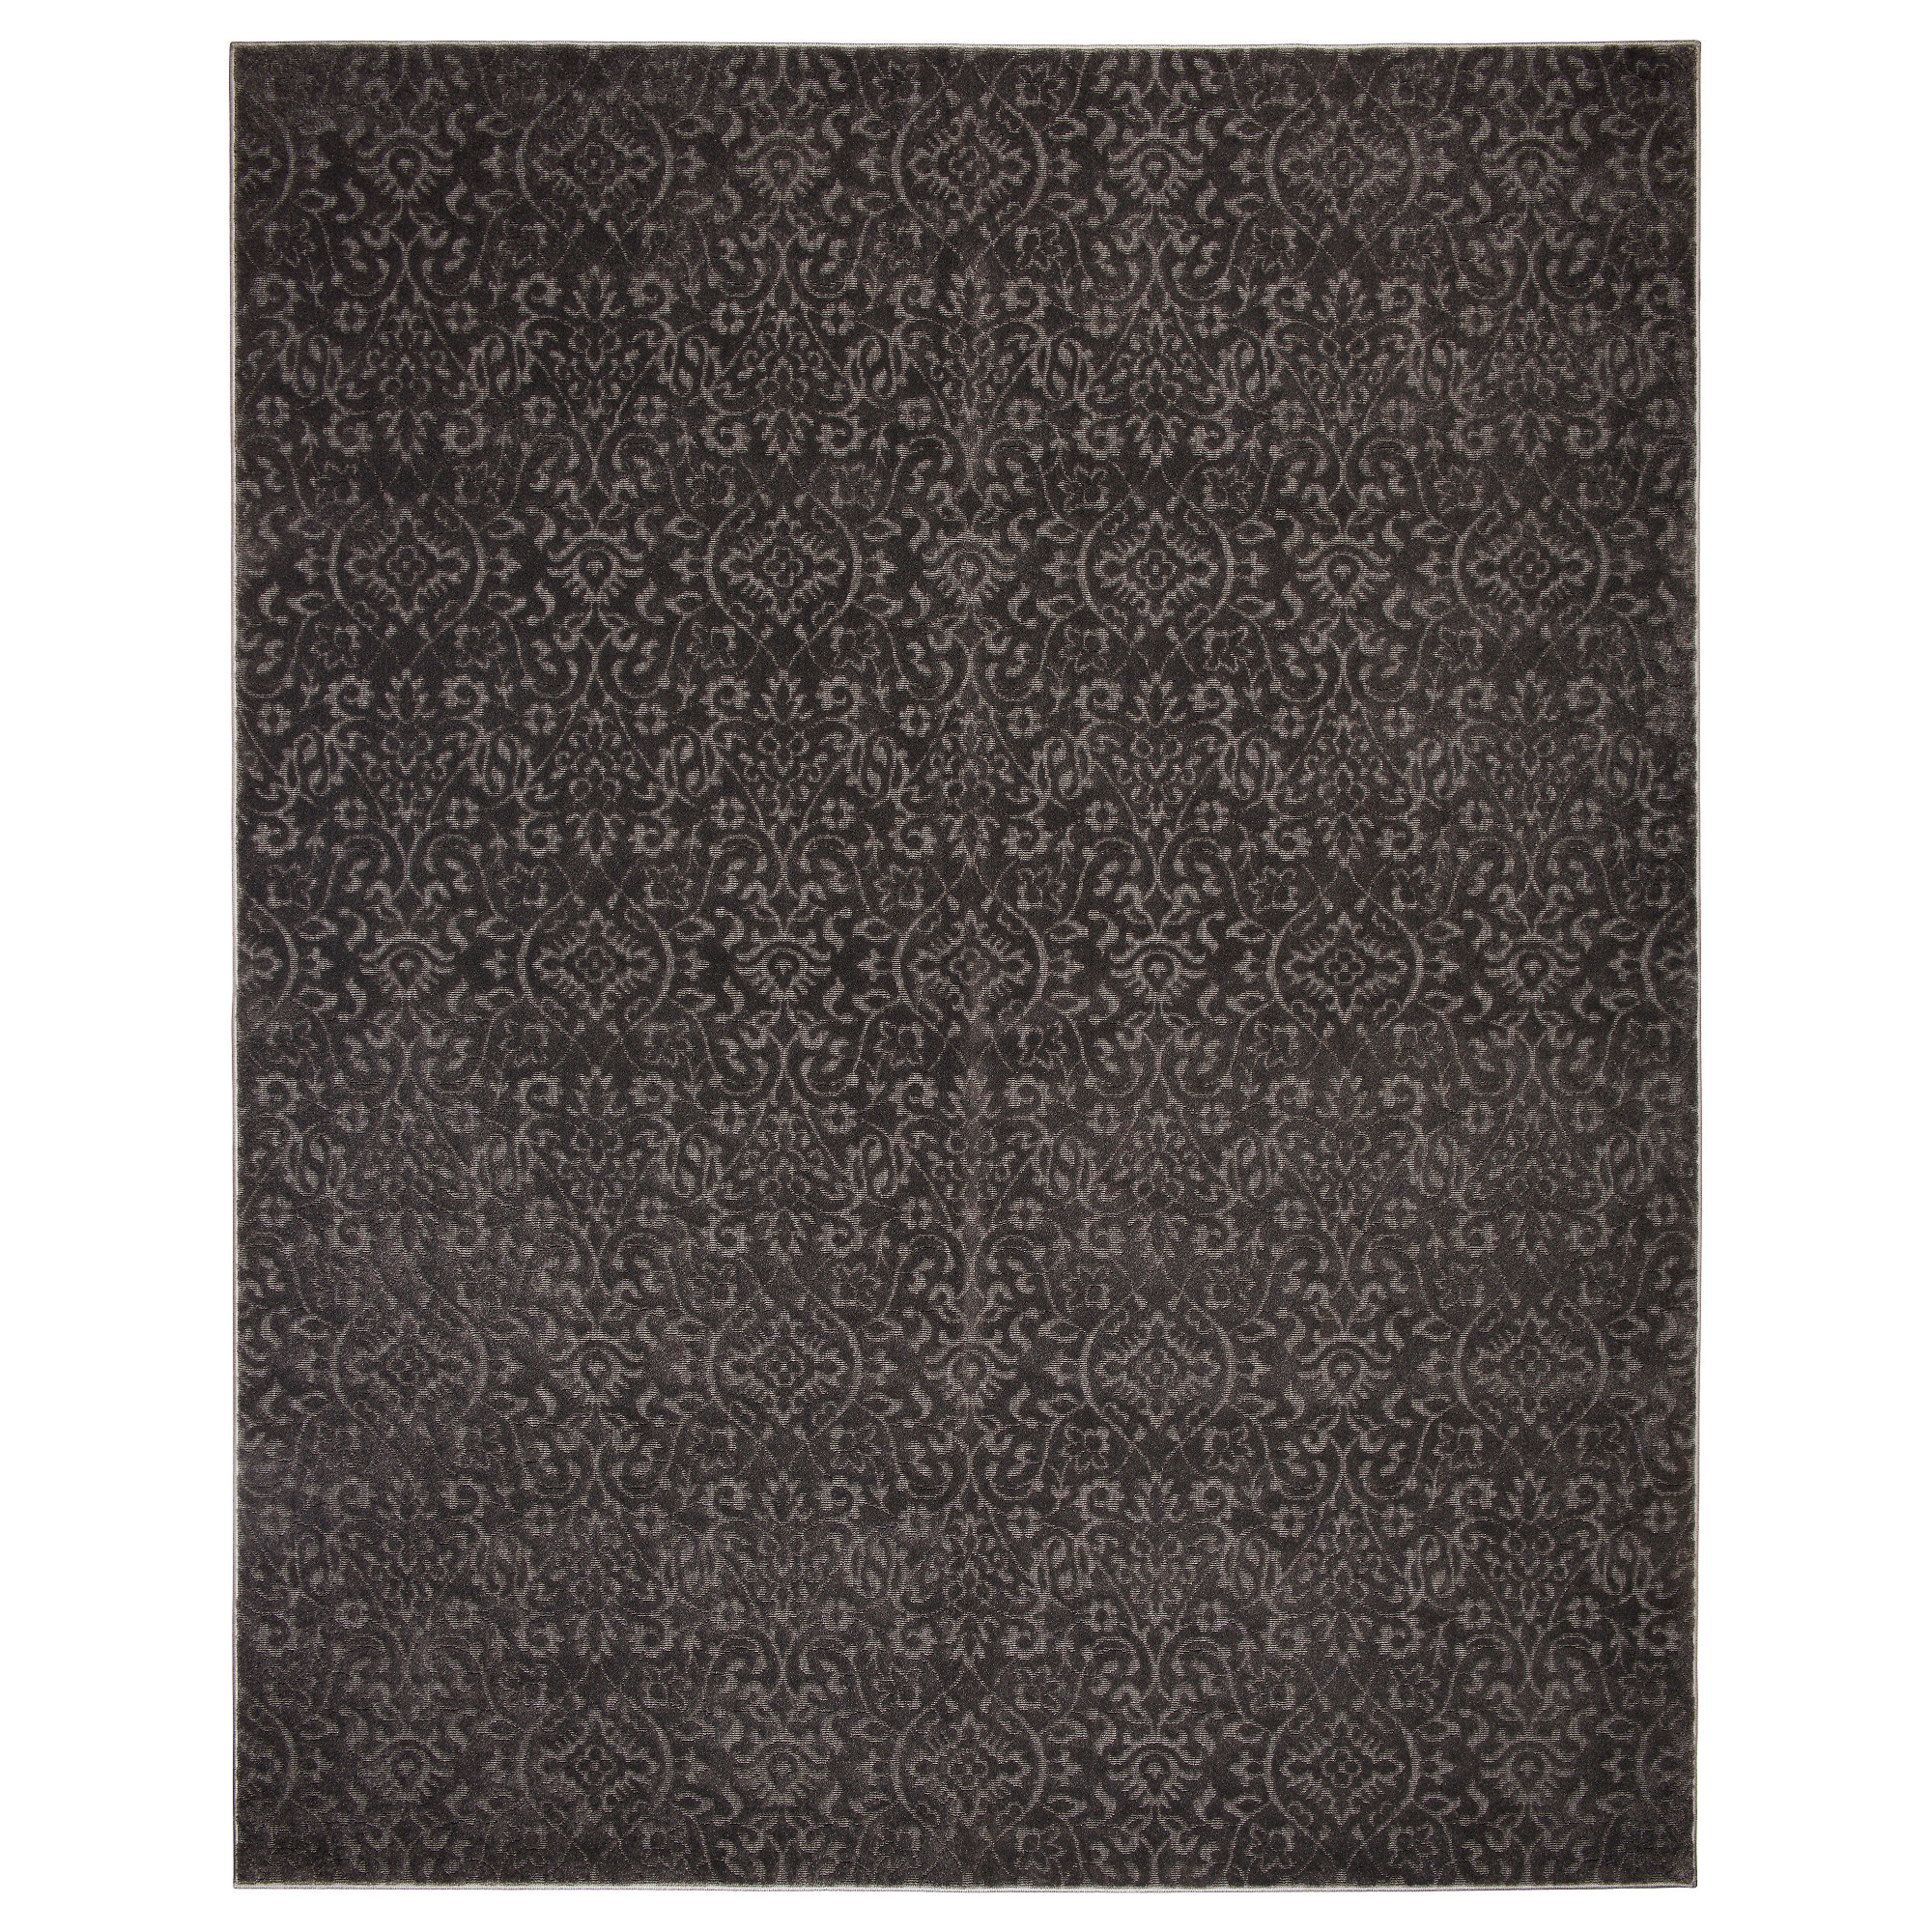 10 By 10 Rug Part - 37: DYNT Rug, Low Pile - IKEA